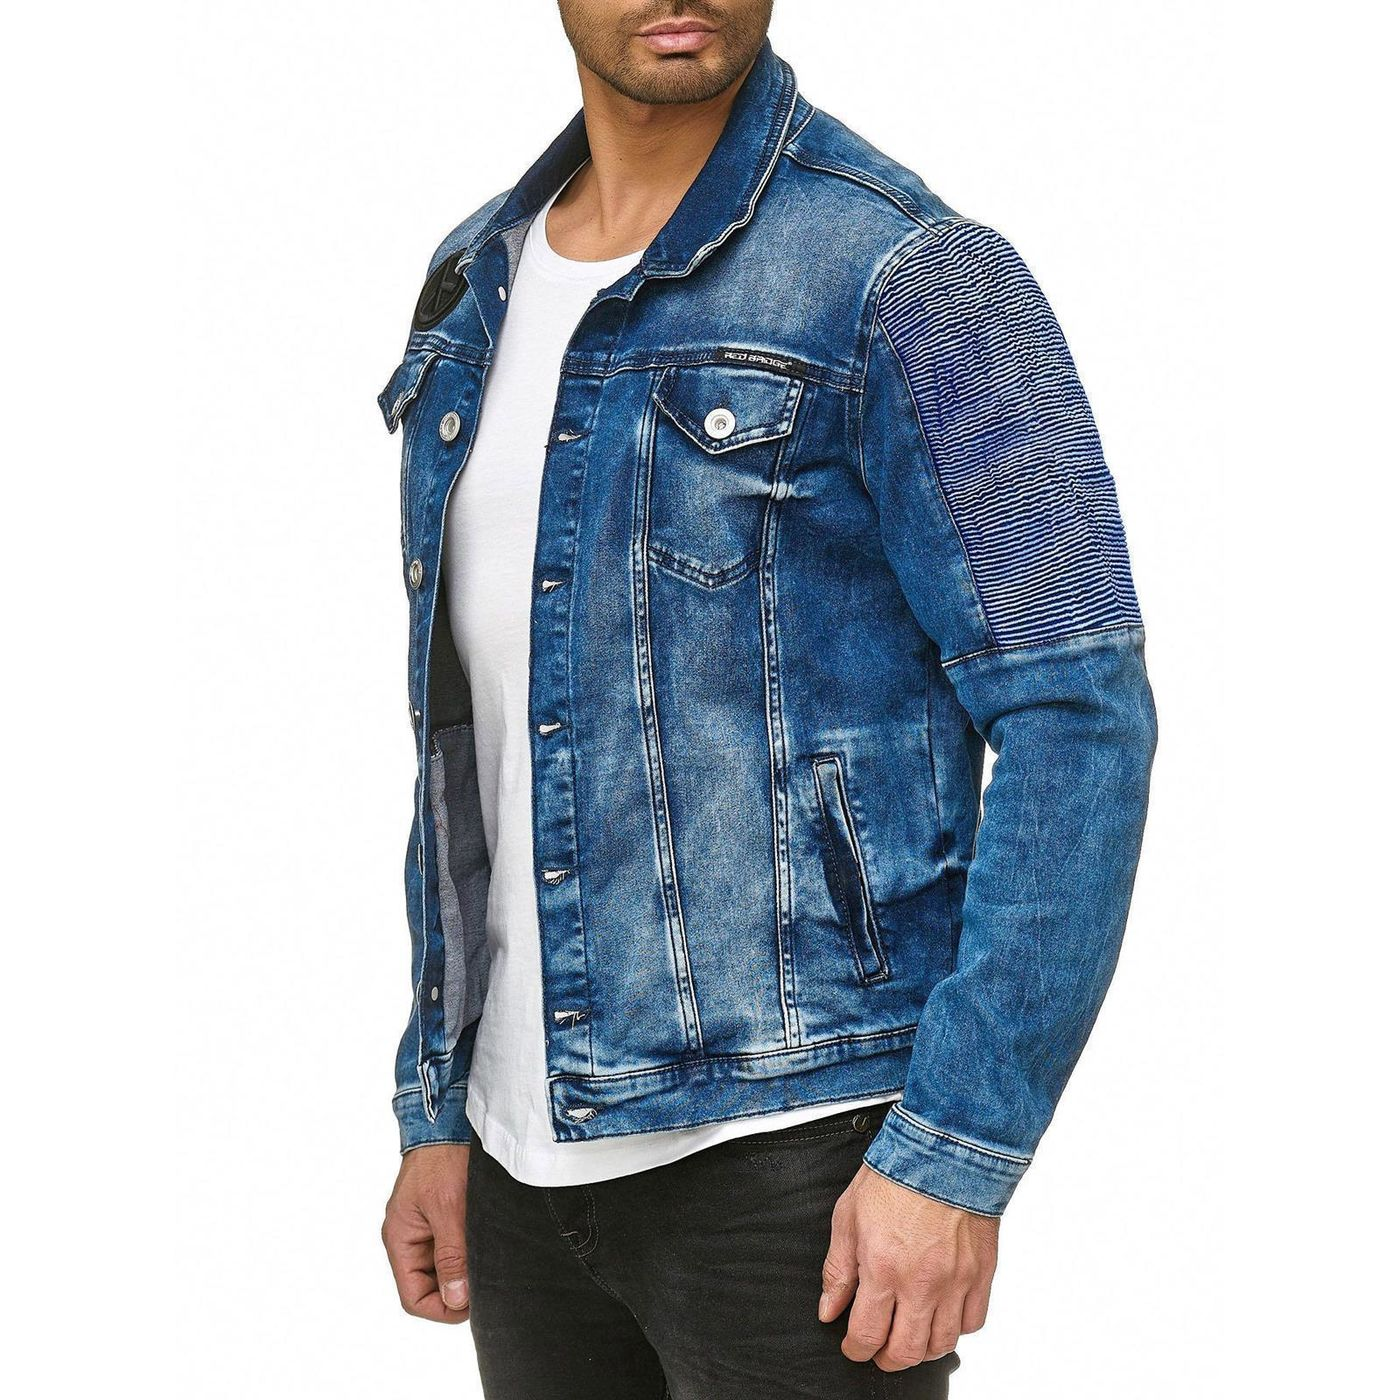 red bridge herren jeansjacke bergangsjacke rbc blue denim blau m6058 64 99. Black Bedroom Furniture Sets. Home Design Ideas